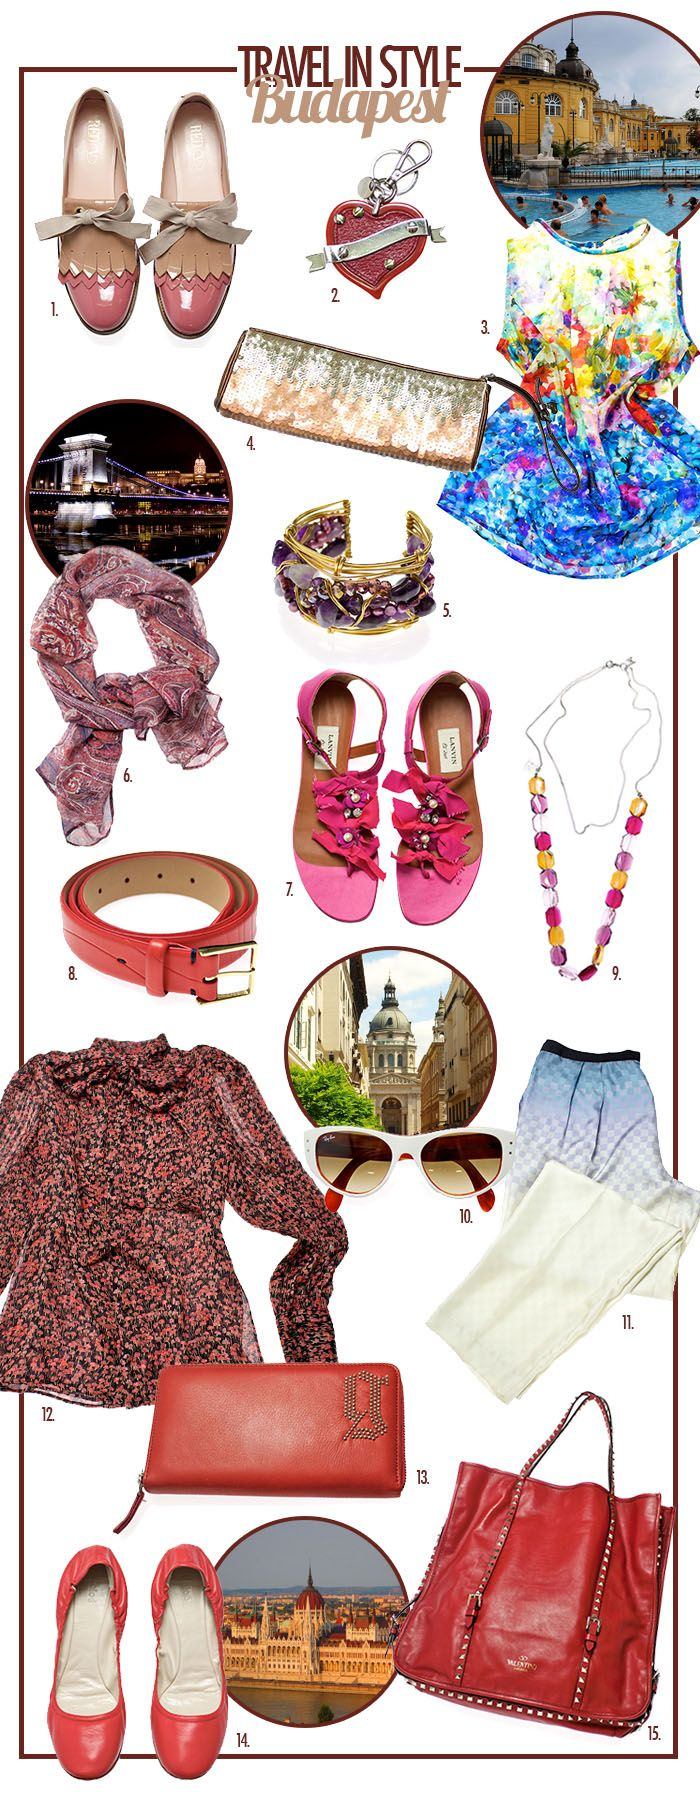 Travel in Style - Budapest: With Valentino Slipper, Lanvin Sandals and Dries van Noten Pants...